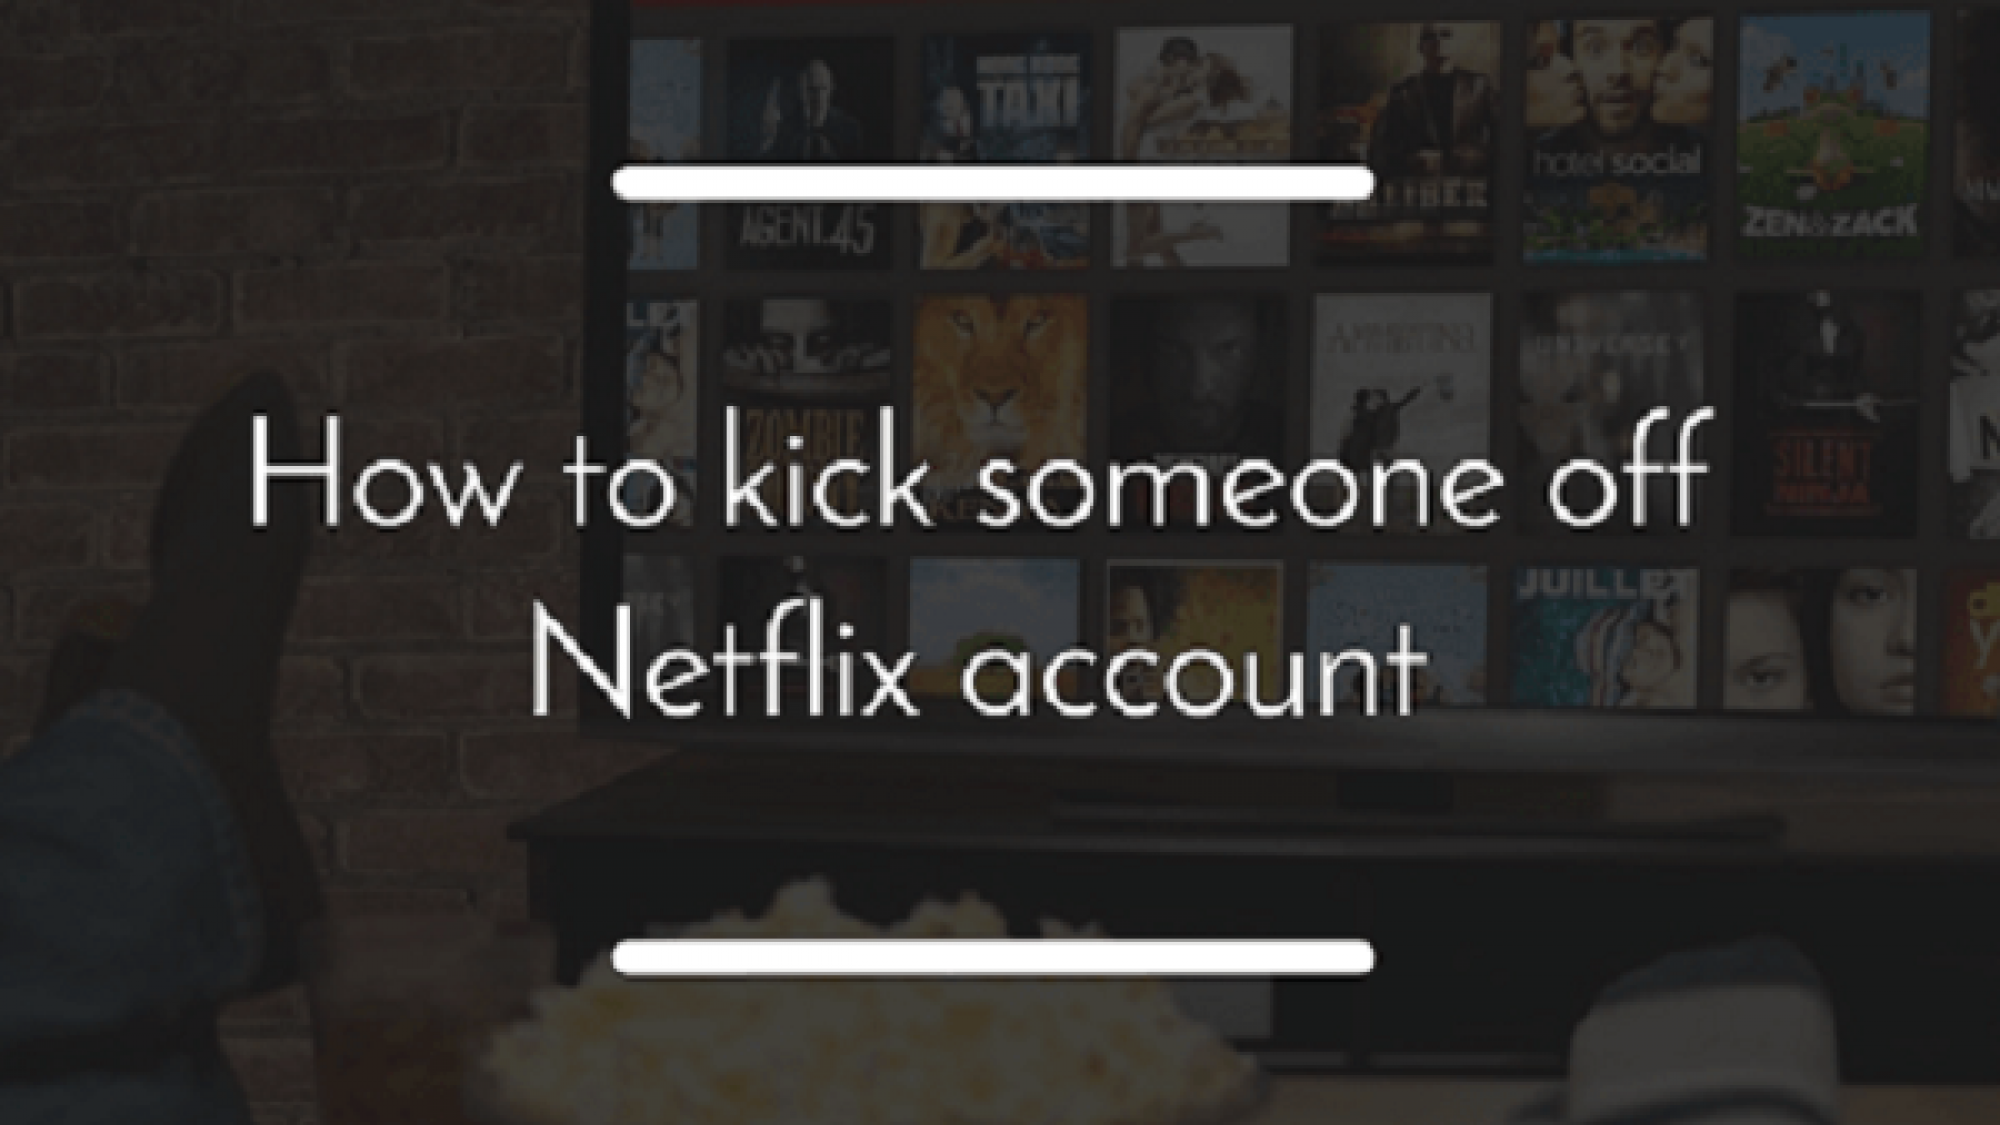 how to kick someone off NetFlix while they are watching